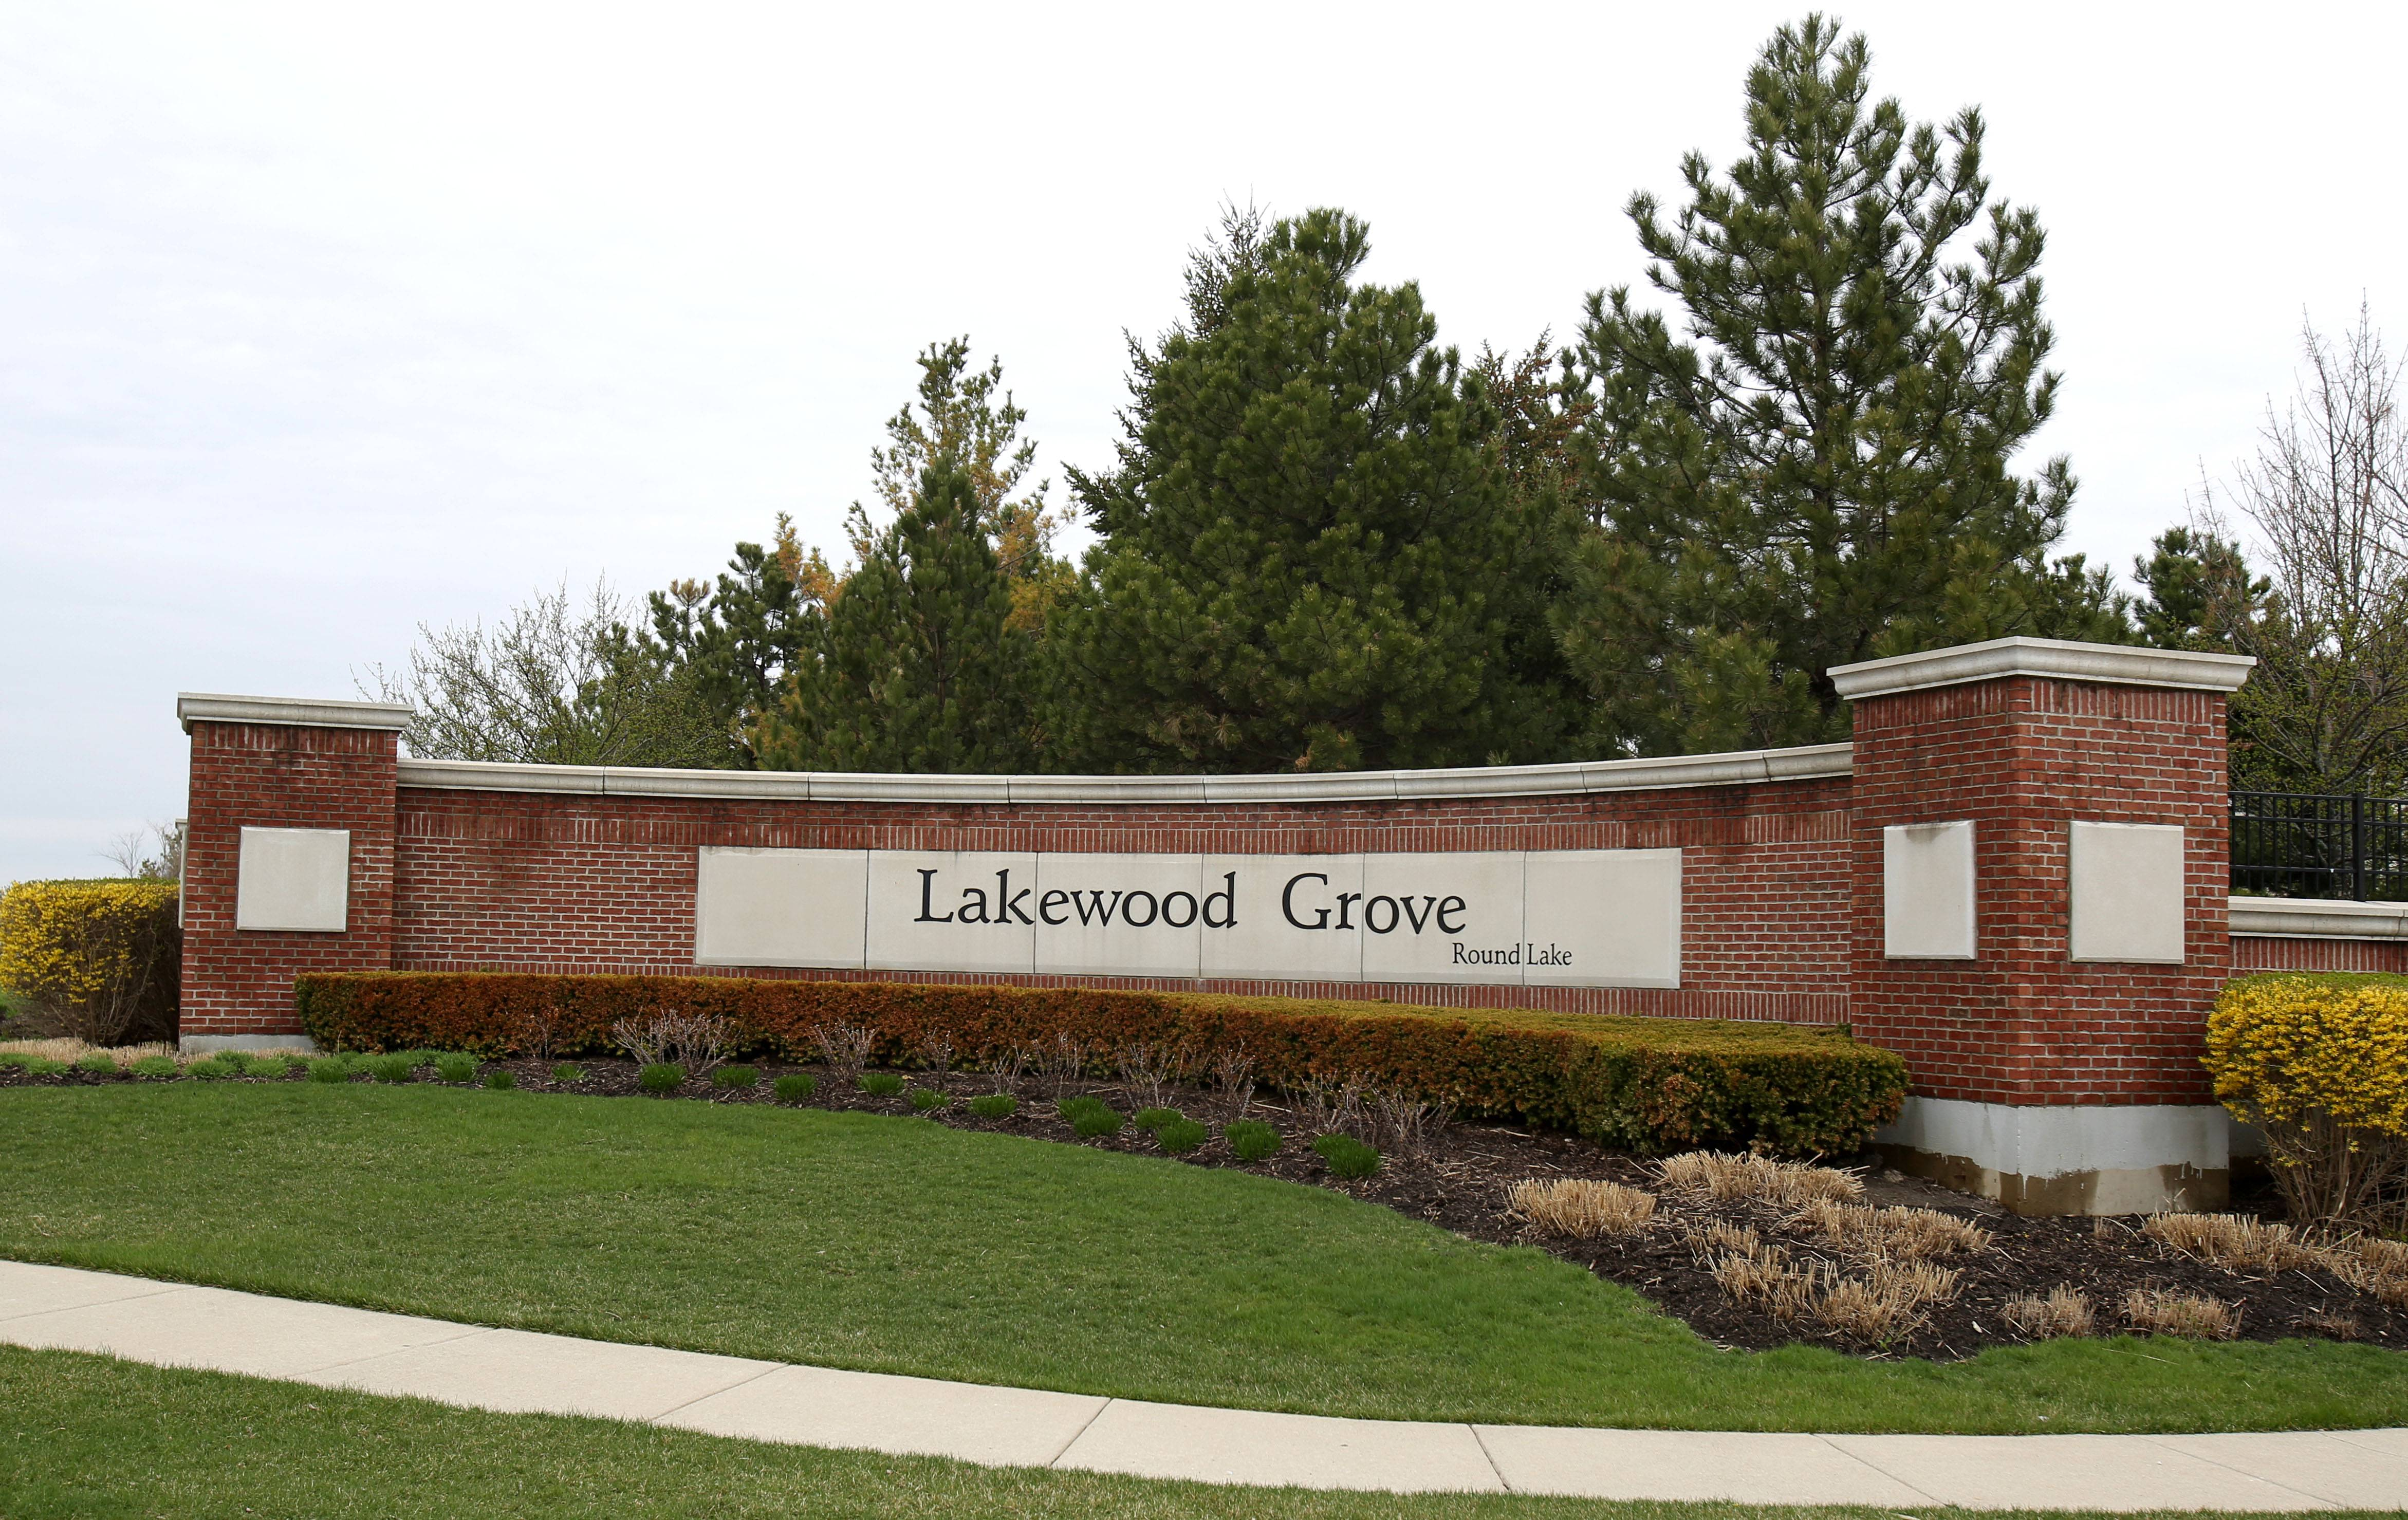 The Lakewood Grove neighborhood is situated off Cedar Lake Road near Route 60.